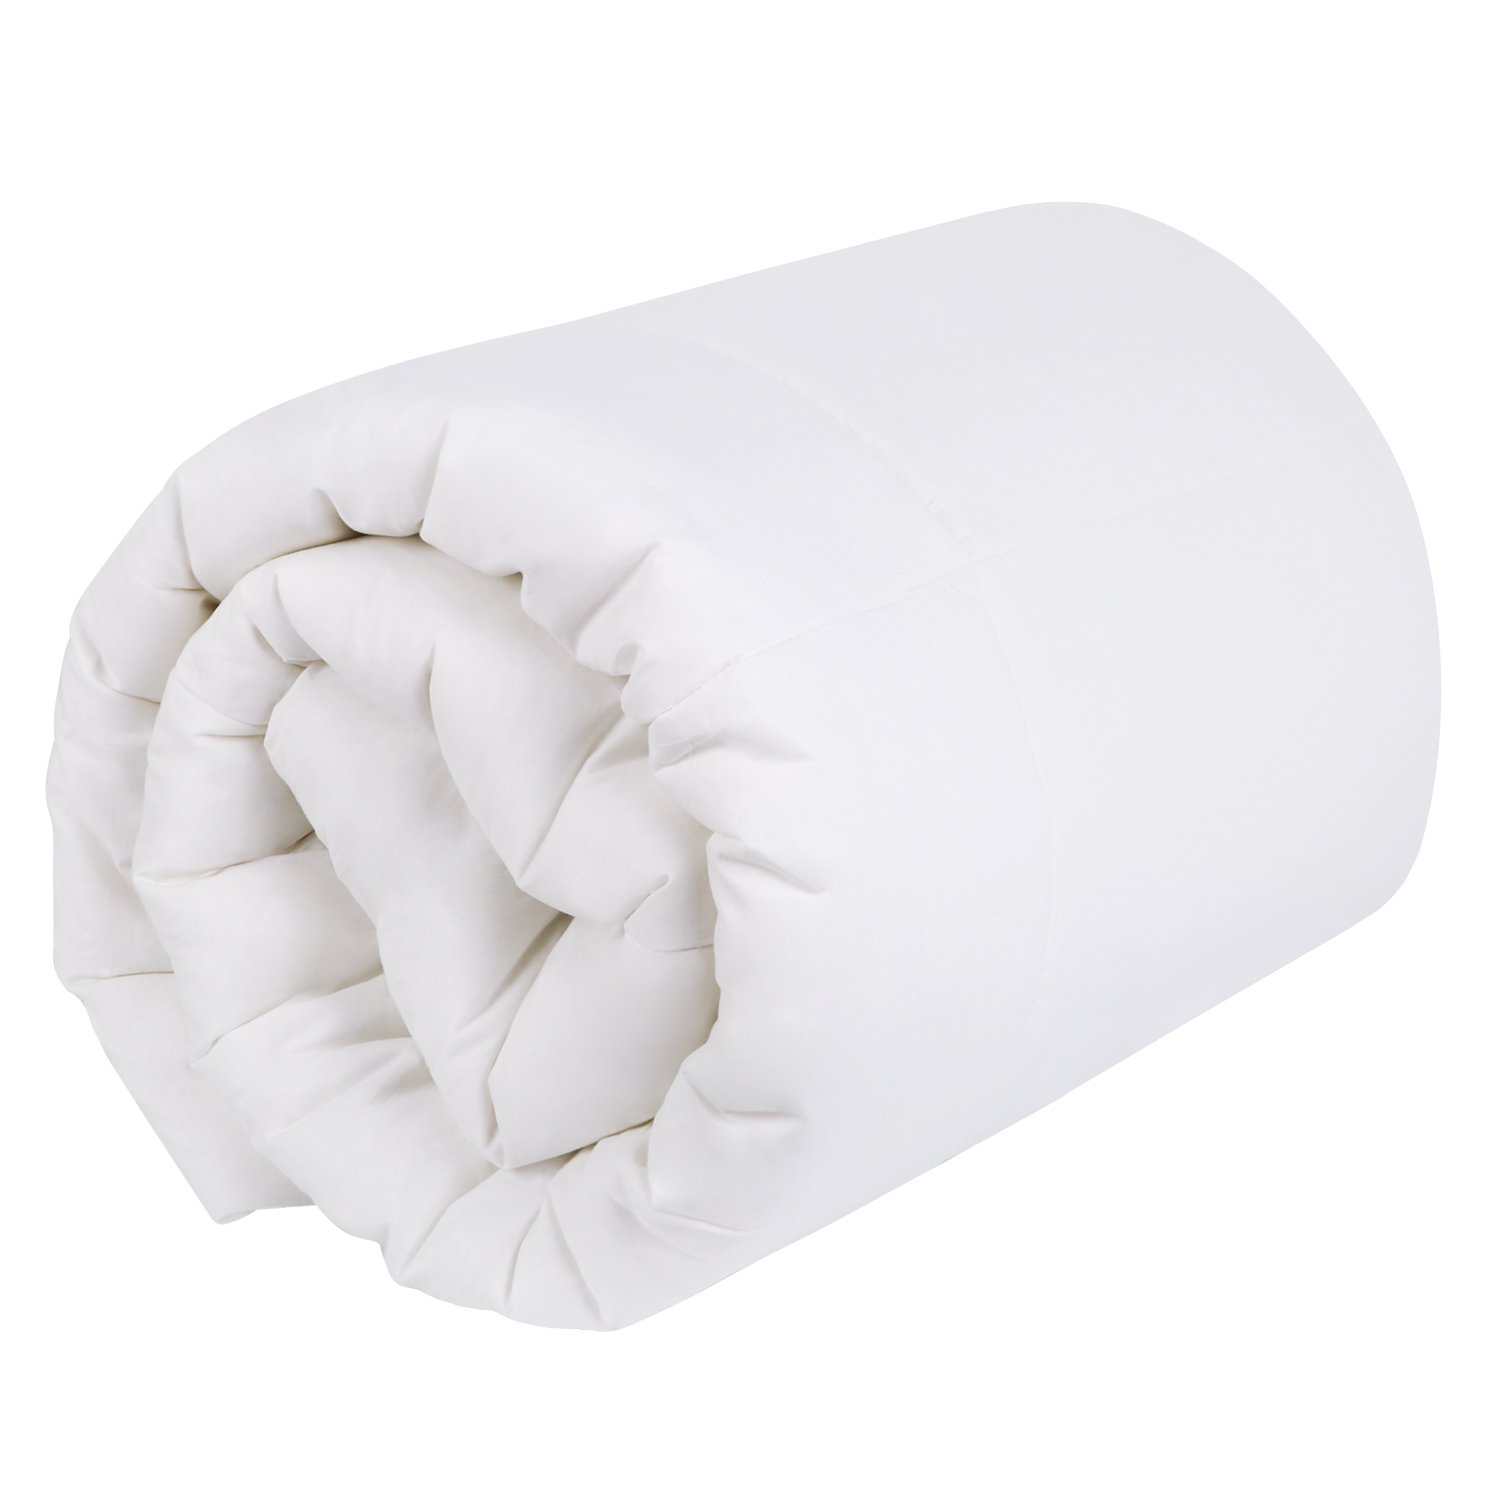 Homfy year round duvet 135 cm × 200 cm, quilt, breathable and suitable for allergy sufferers, white, Cotton, White, 135 x 200 cm